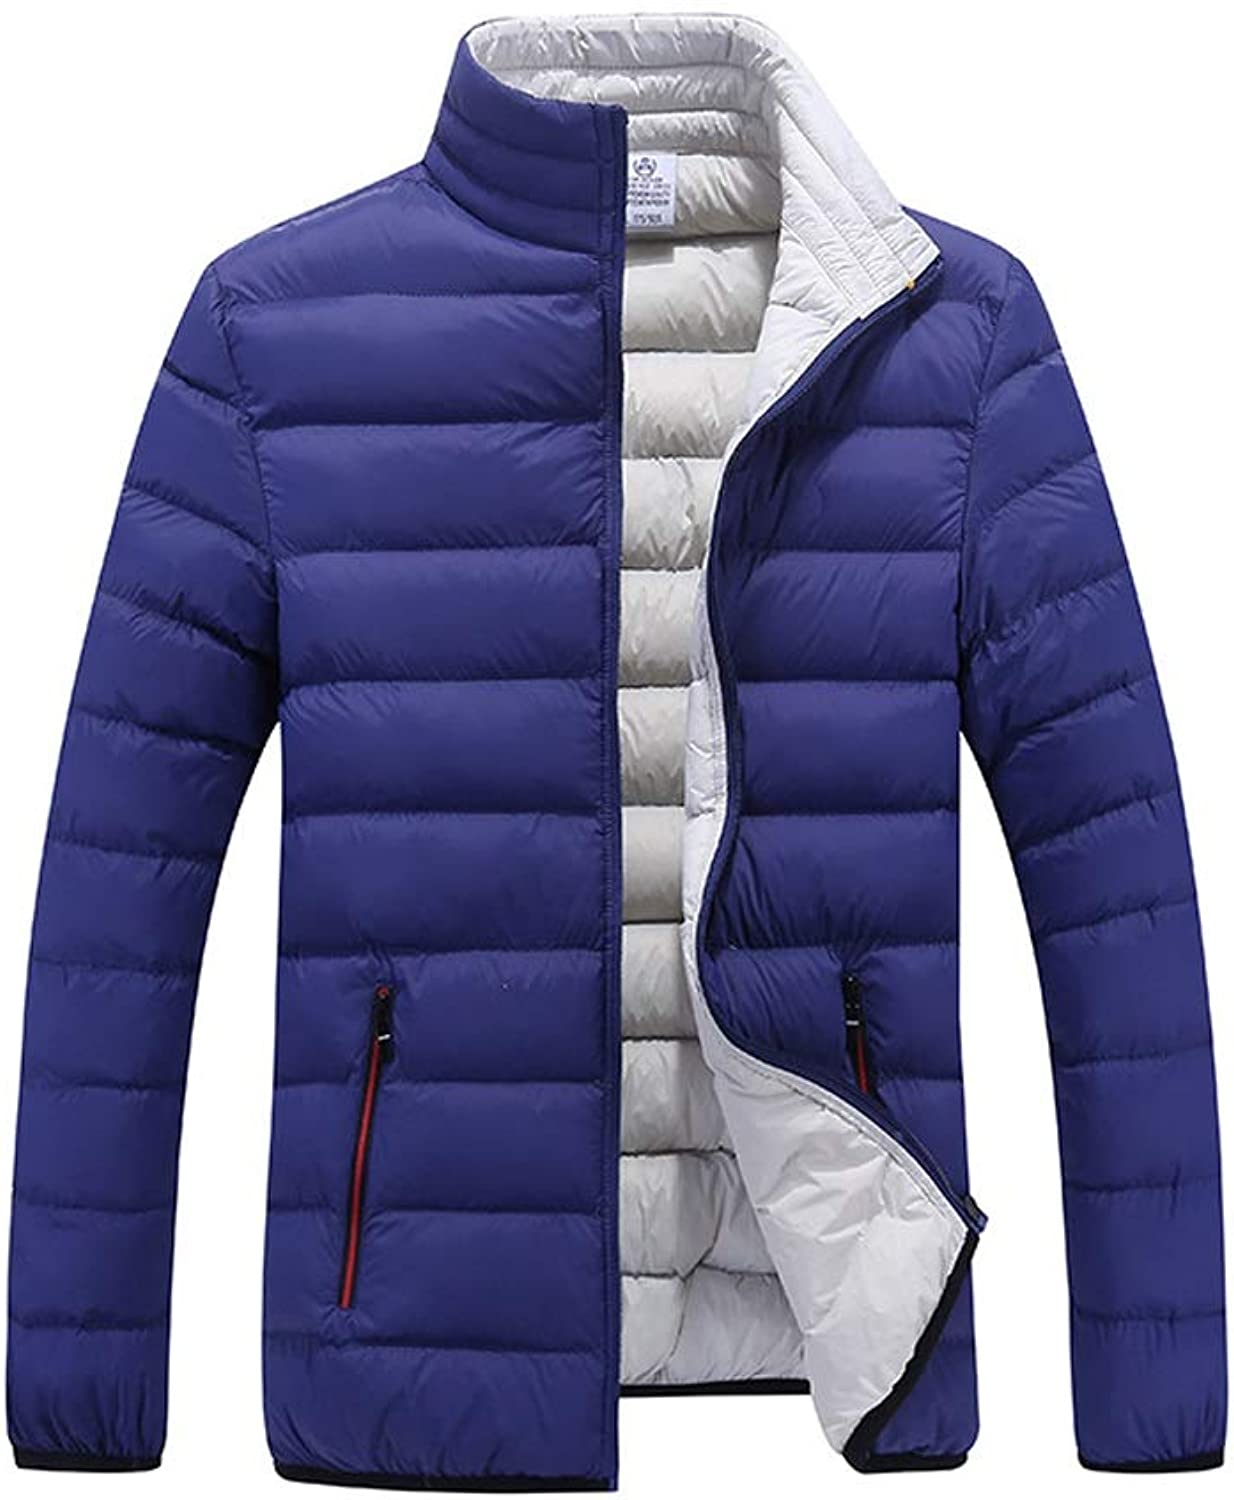 New Down Jacket, Men's Casual Short Loose Cotton Coat, Winter Outdoor Cold Warm Jacket, Light and Easy to Store and Carry